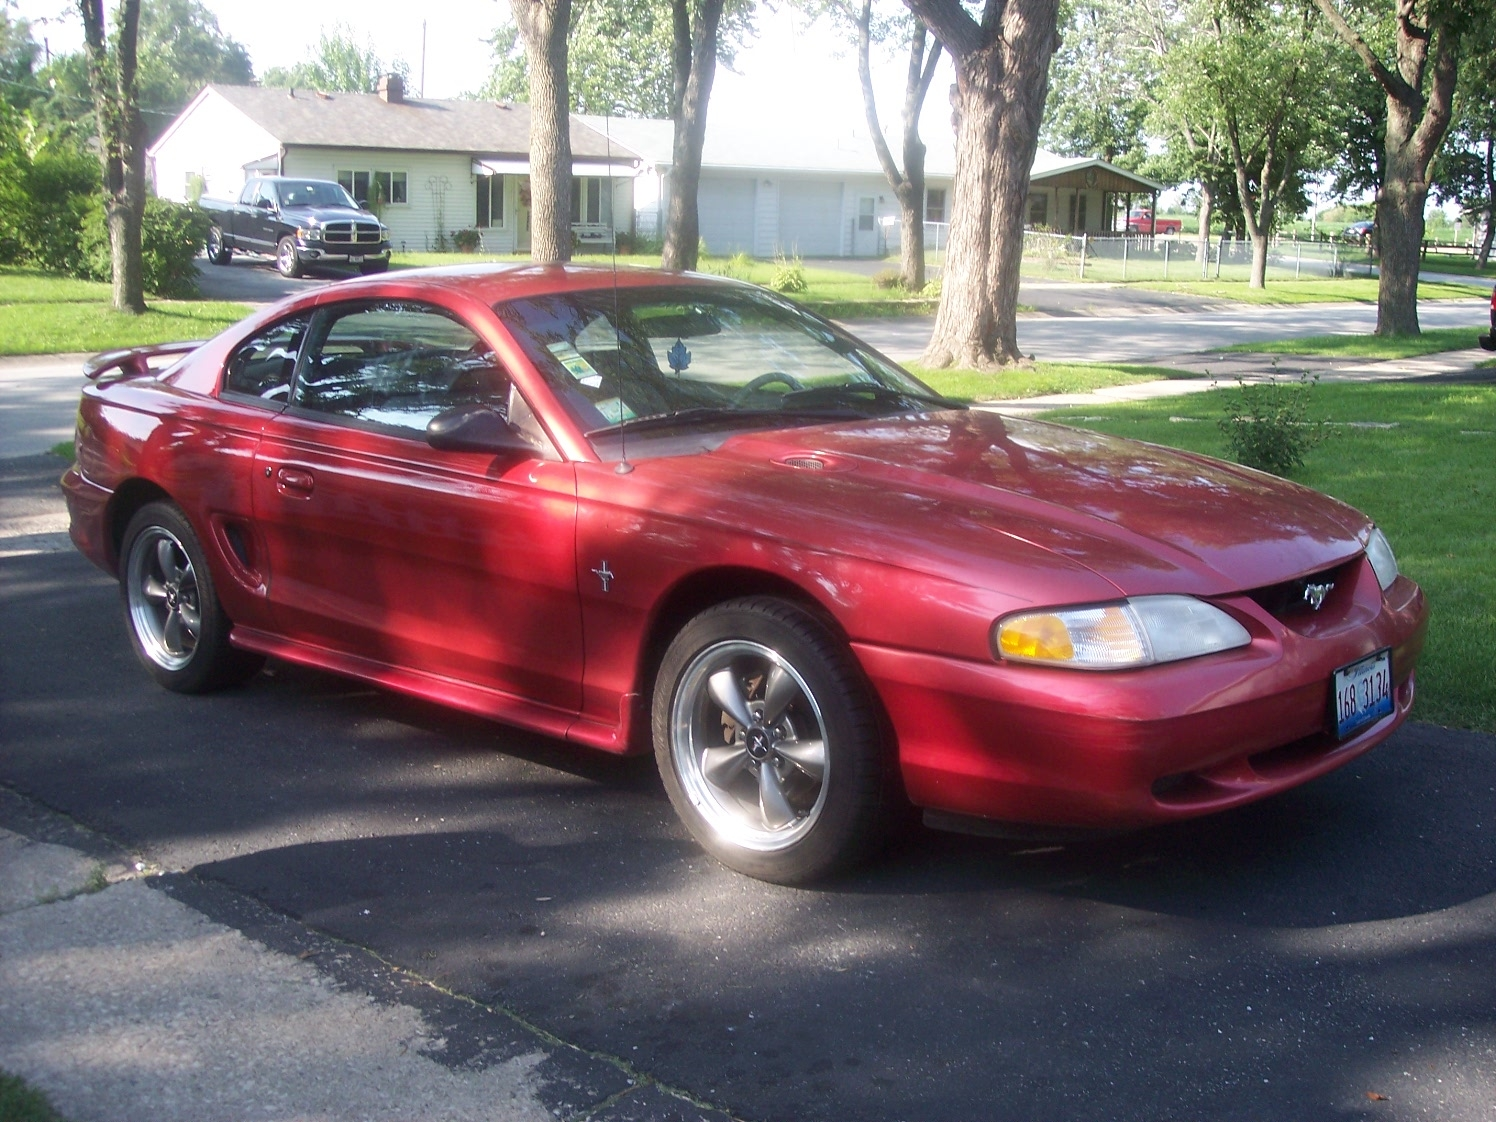 Patron022's 1997 Ford Mustang